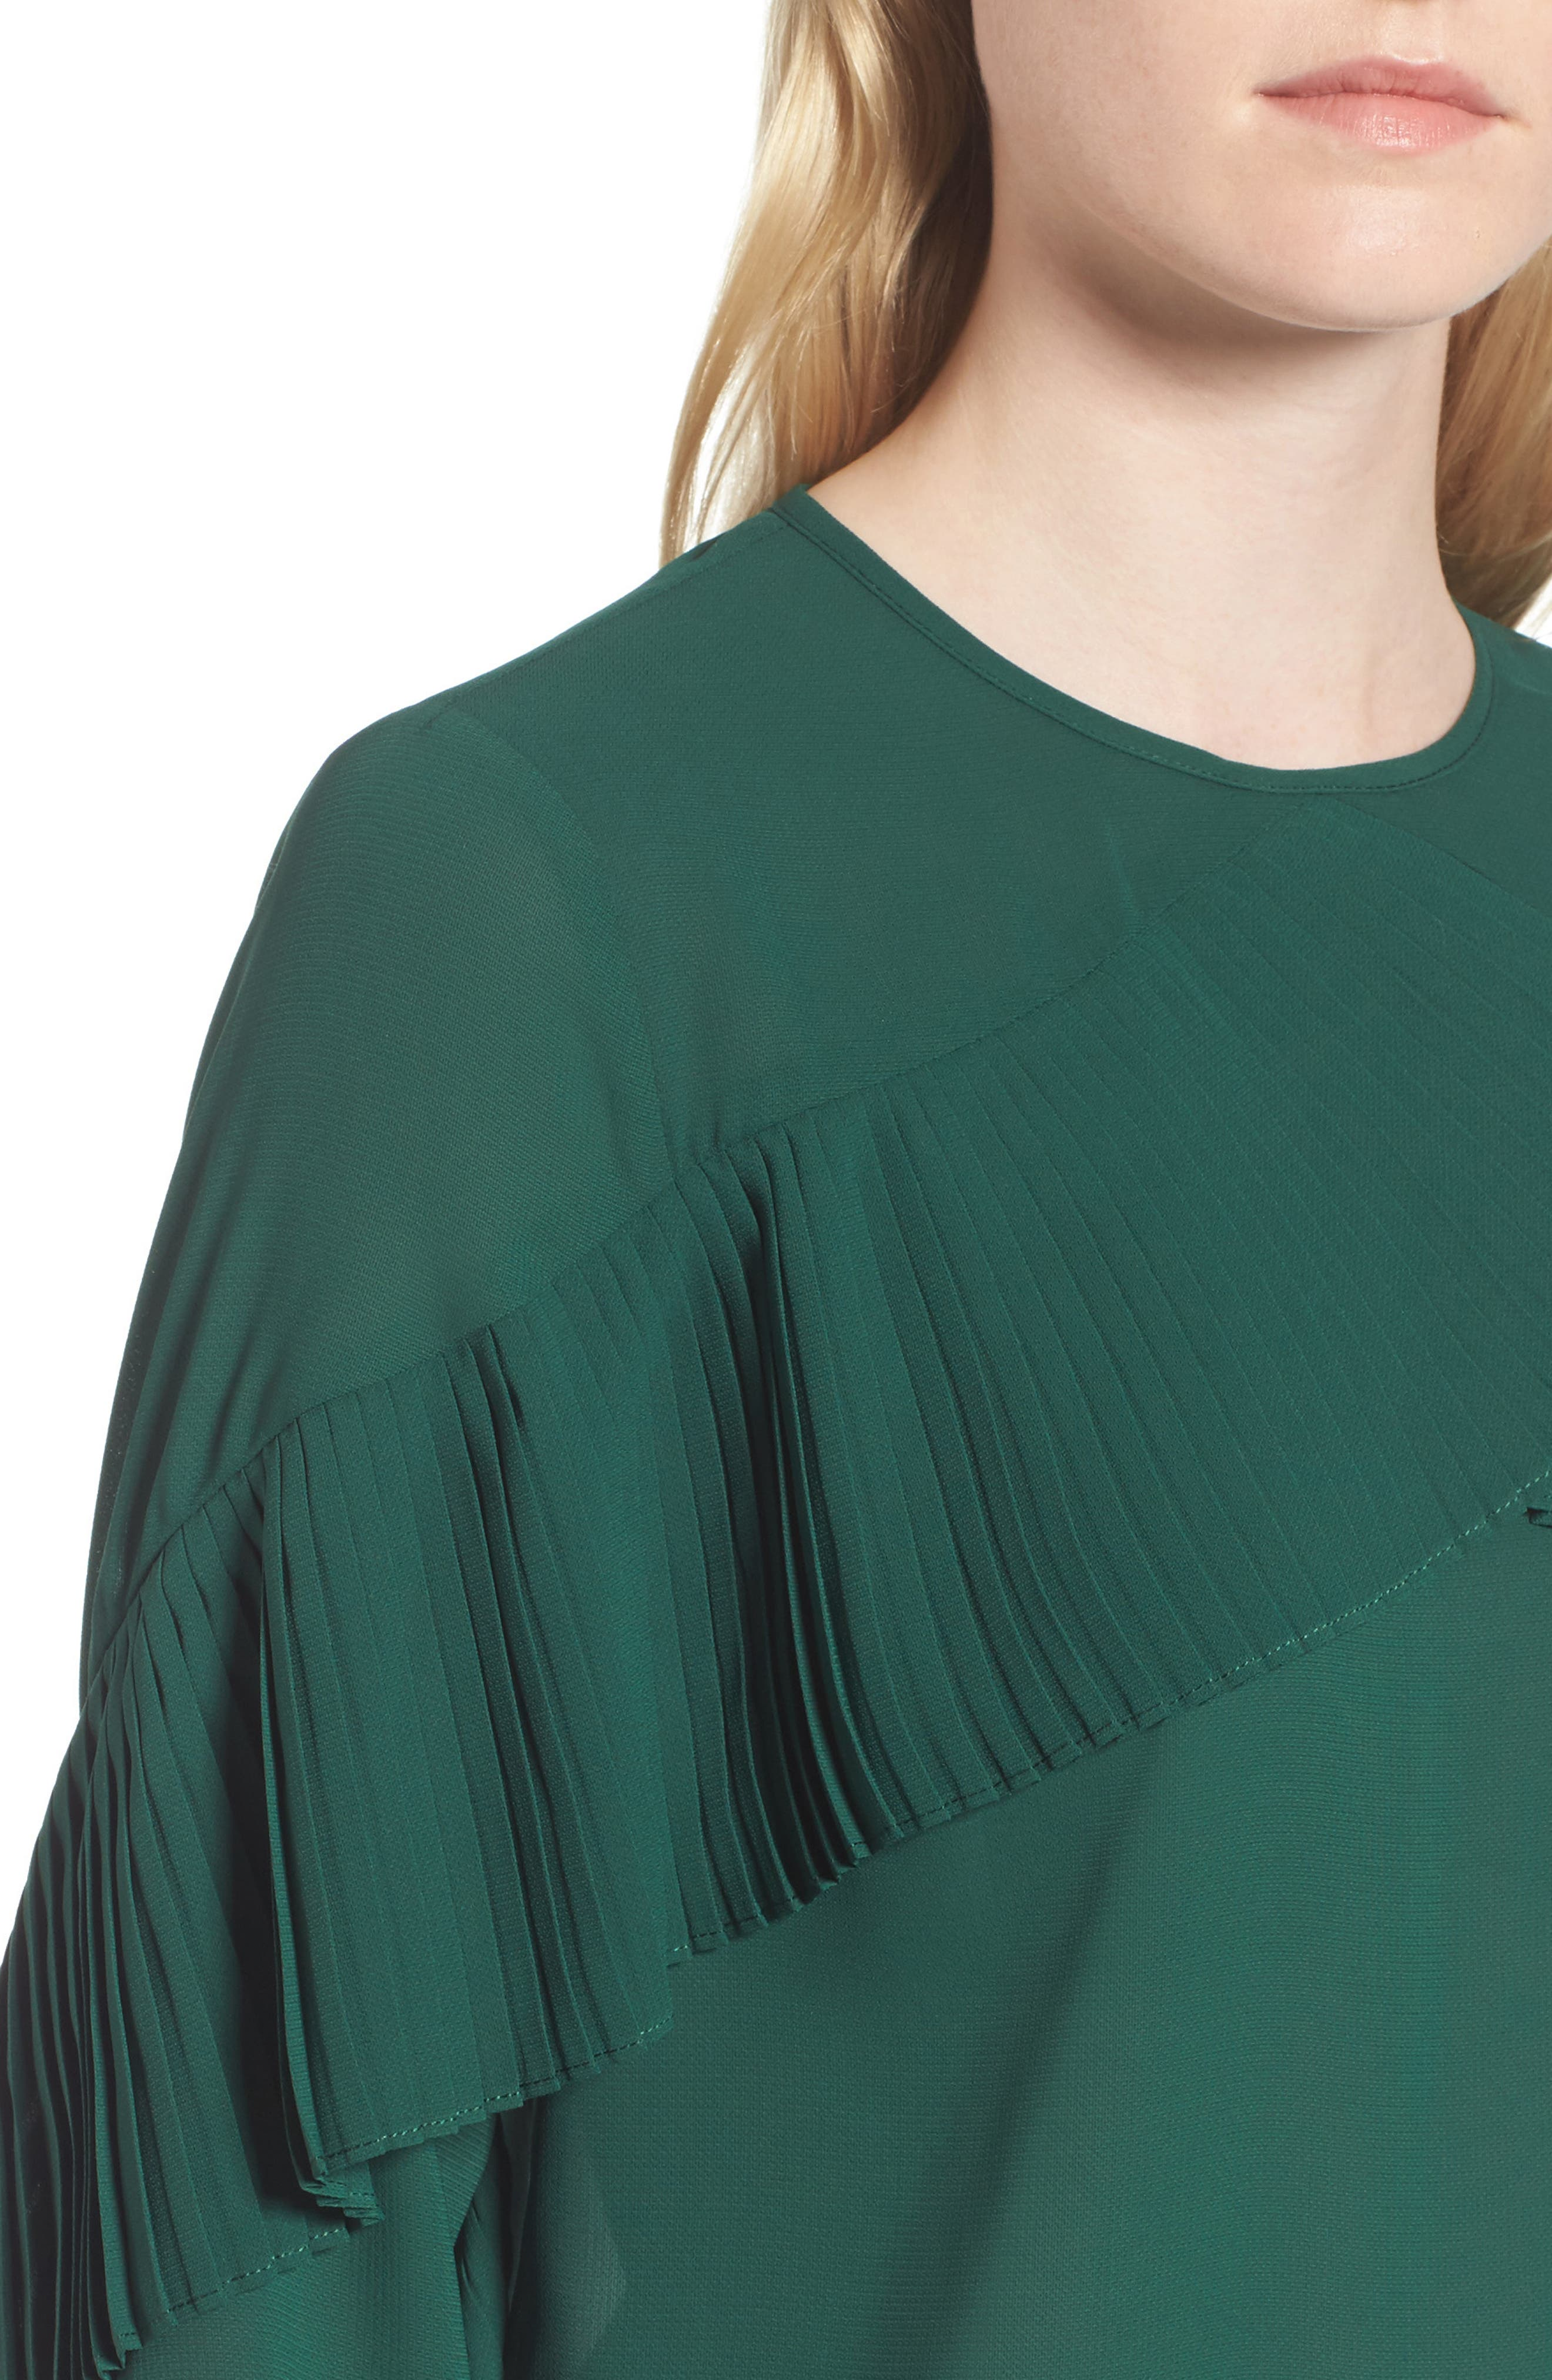 Pleated Ruffle Top,                             Alternate thumbnail 4, color,                             Green Evergreen